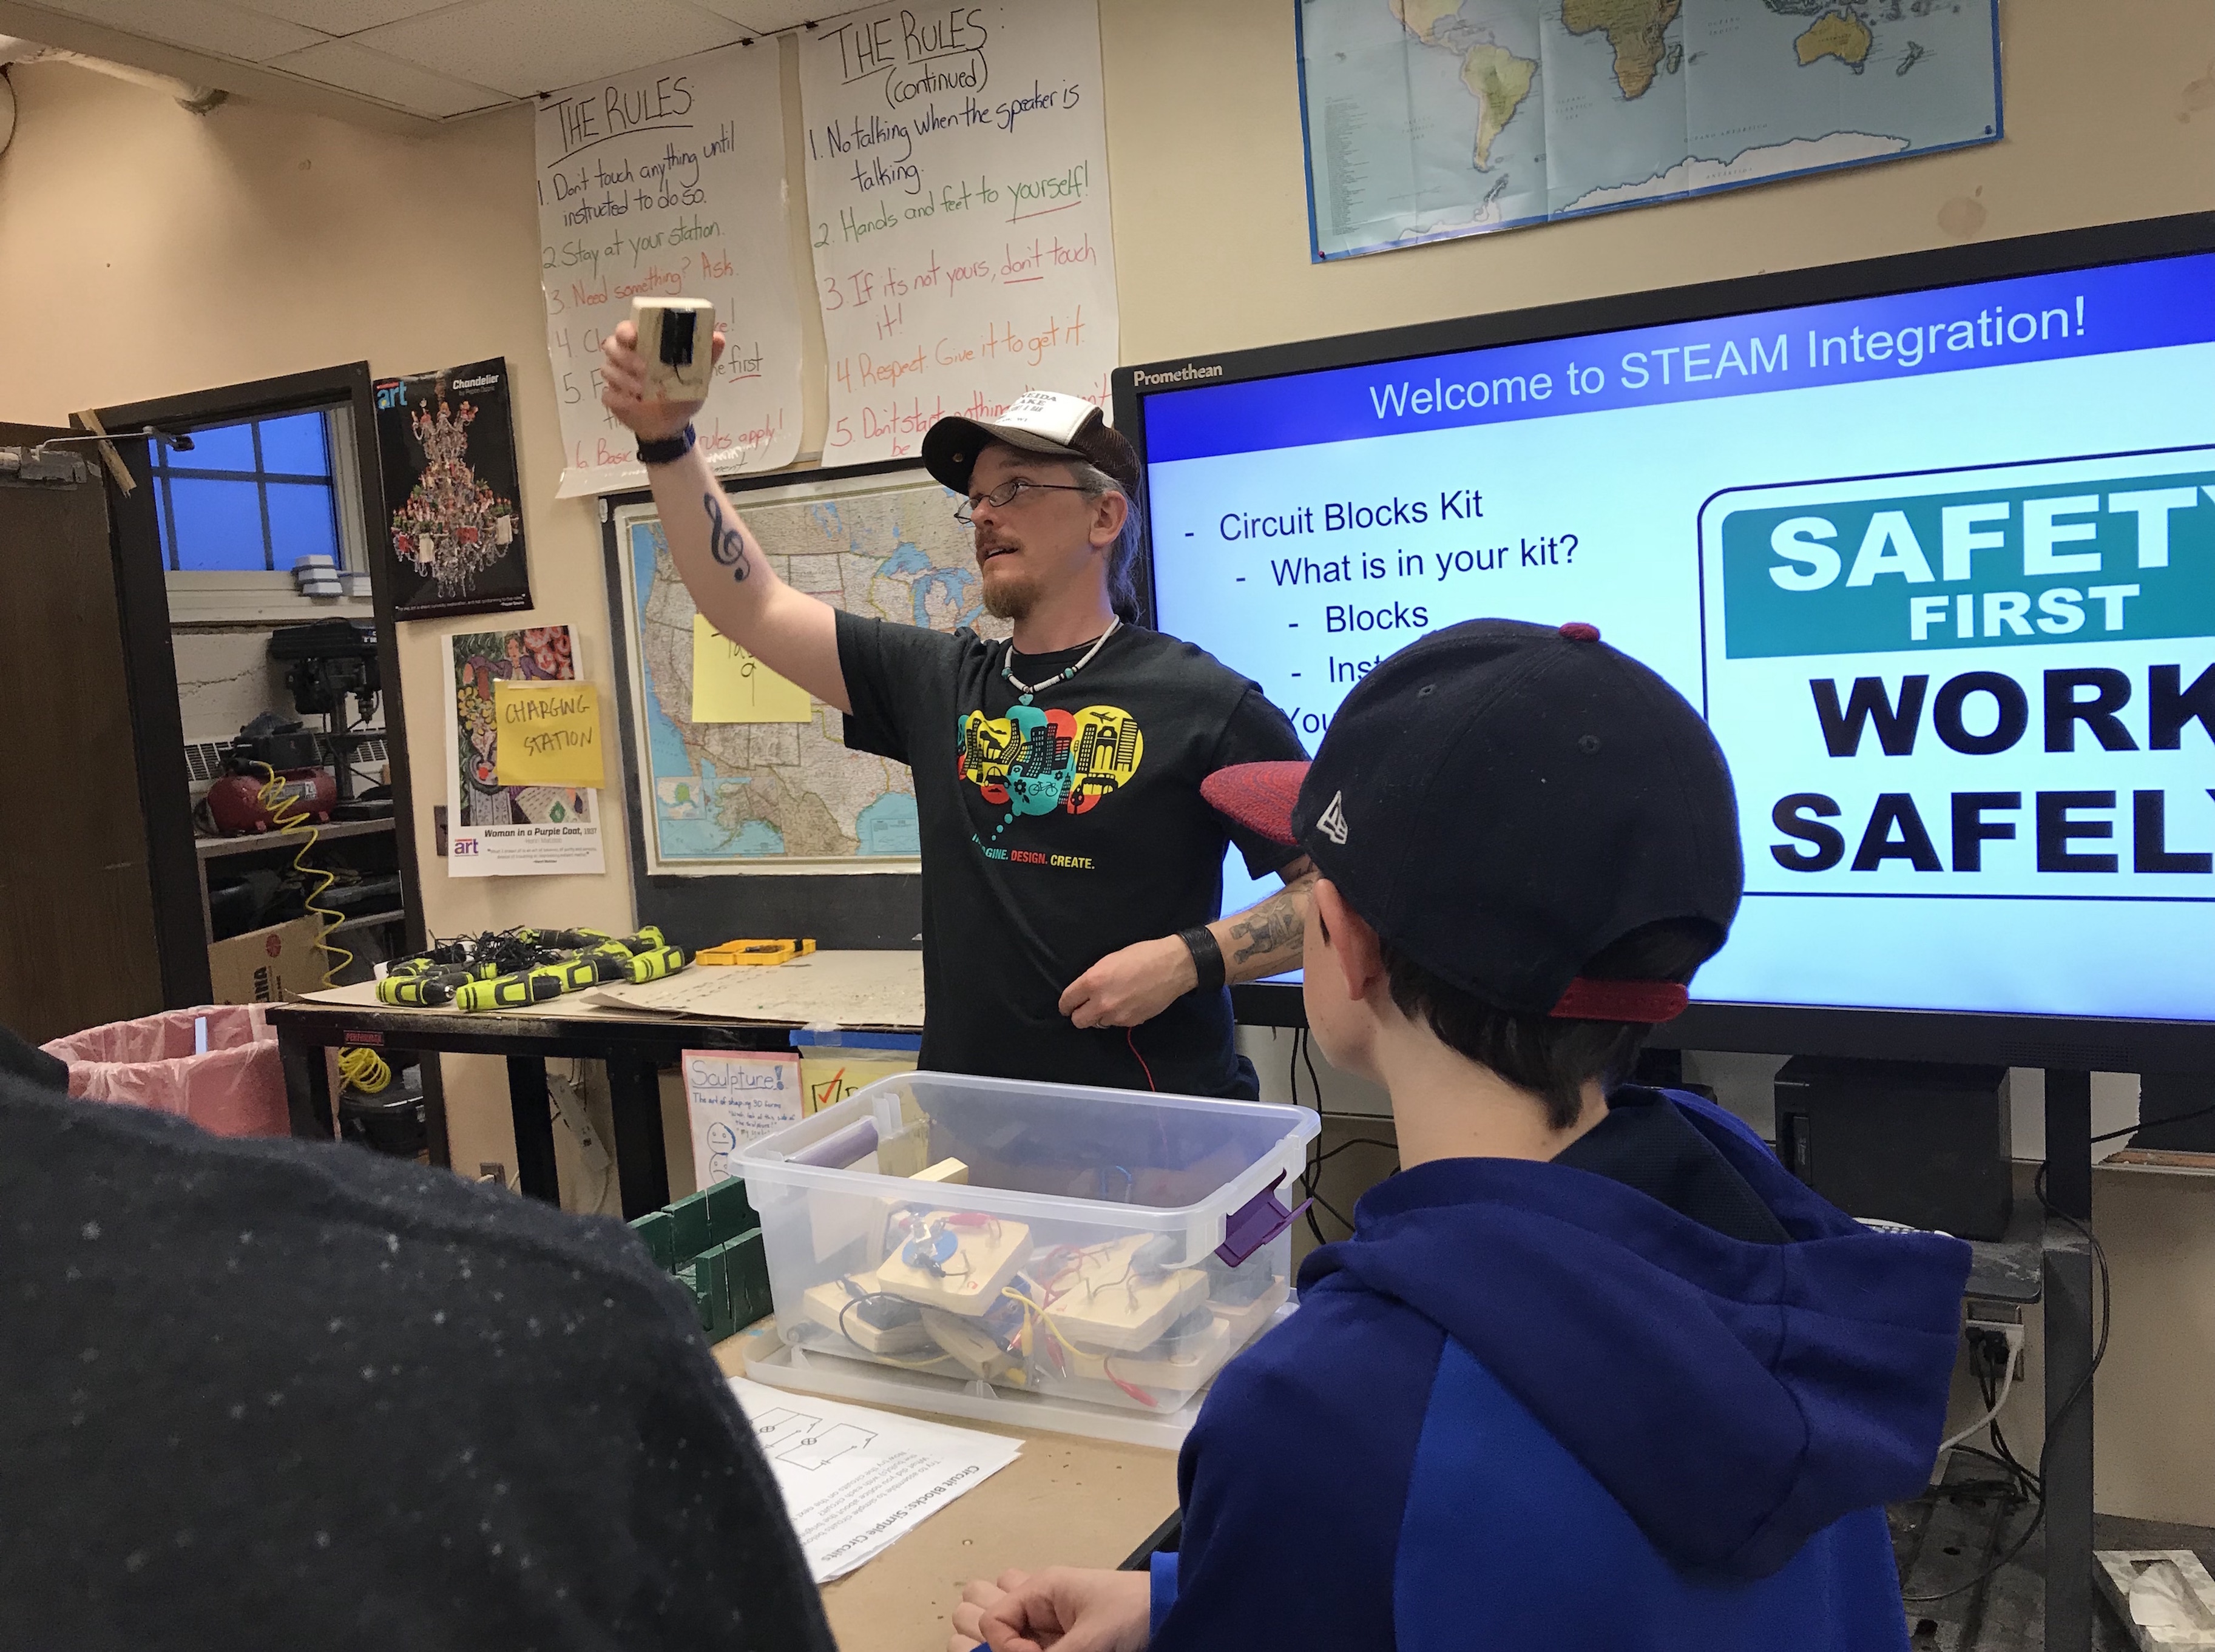 Justice Page Middle School science teacher Travis Koupal provides instructions for an activity in the school's maker space.